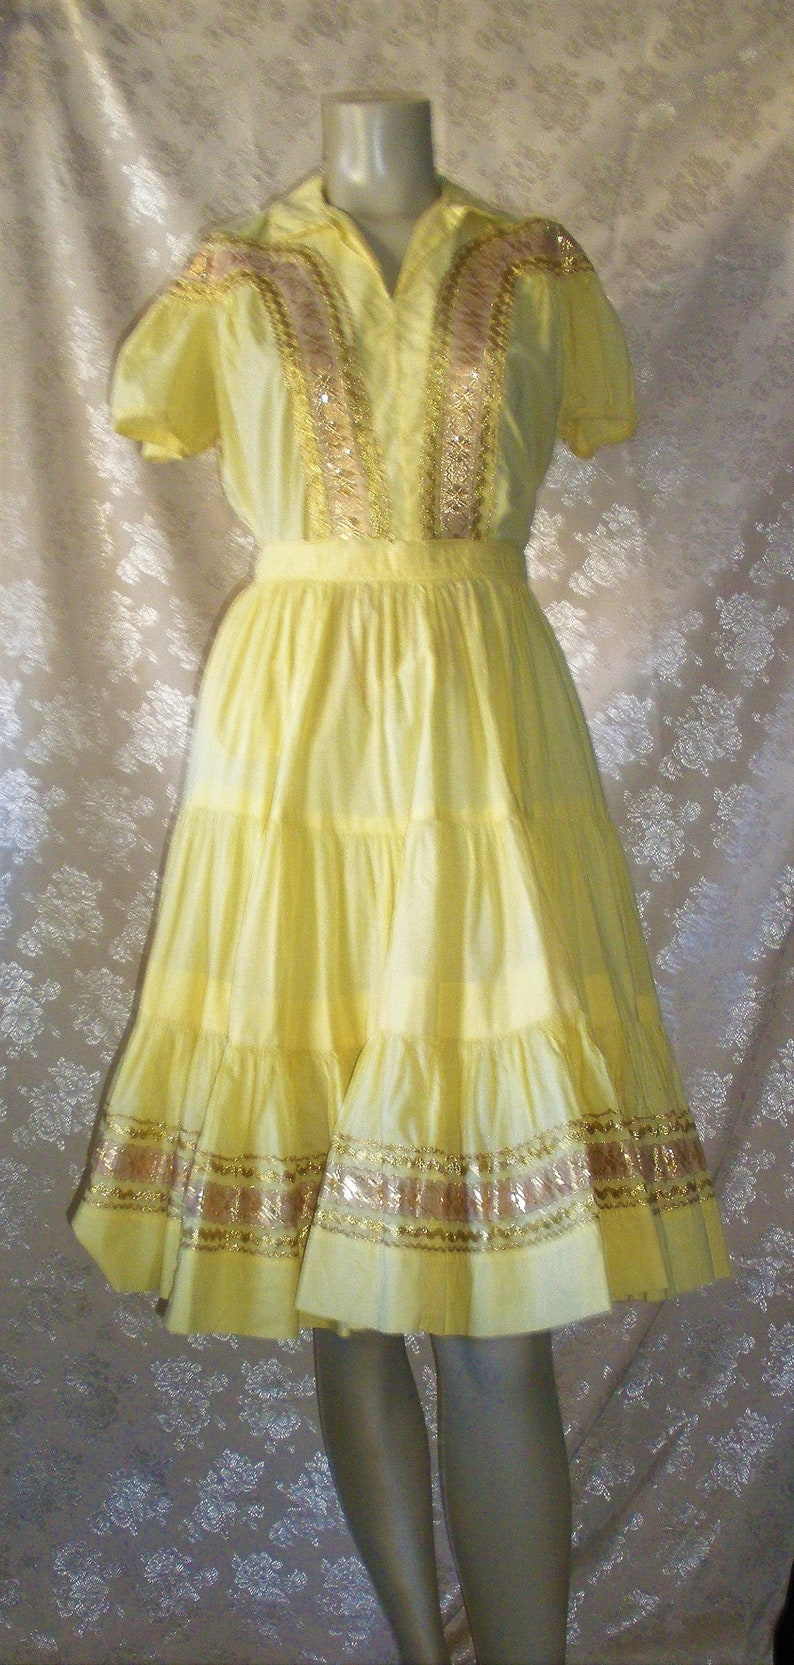 Vintage 1950s Patio  Retro Rockabilly Pinup Womens Clothing 2 Piece Skirt /& Top Set Yellow Gold Ric Rac Trim Mexican inspired Southwestern